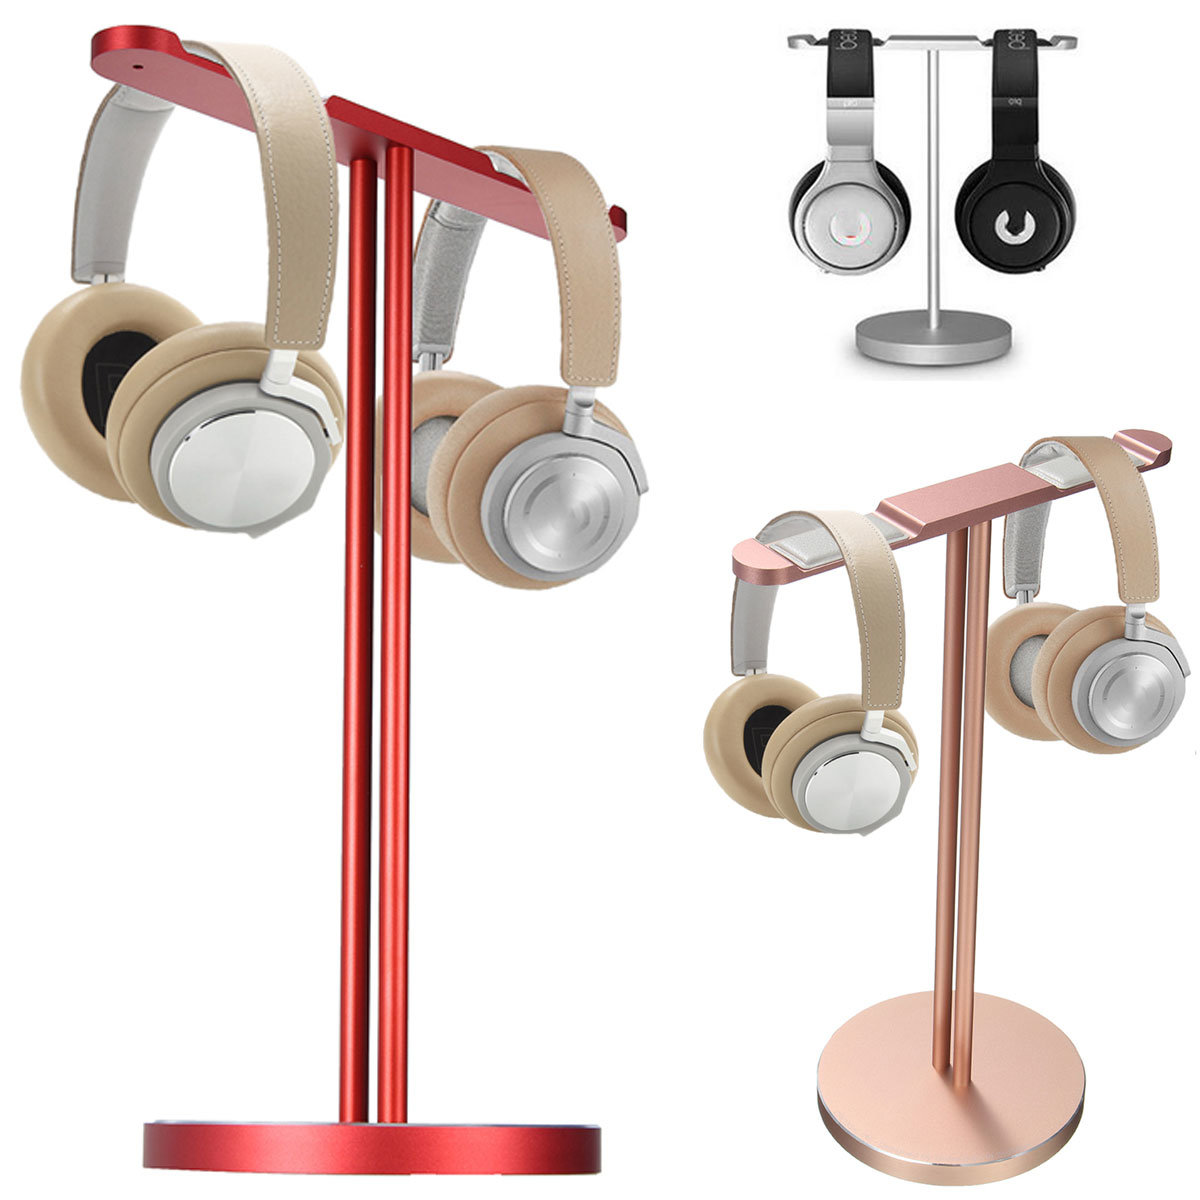 Aluminum Alloy Double Stick Display Stand Holder Storage Holder For Headphone Headset